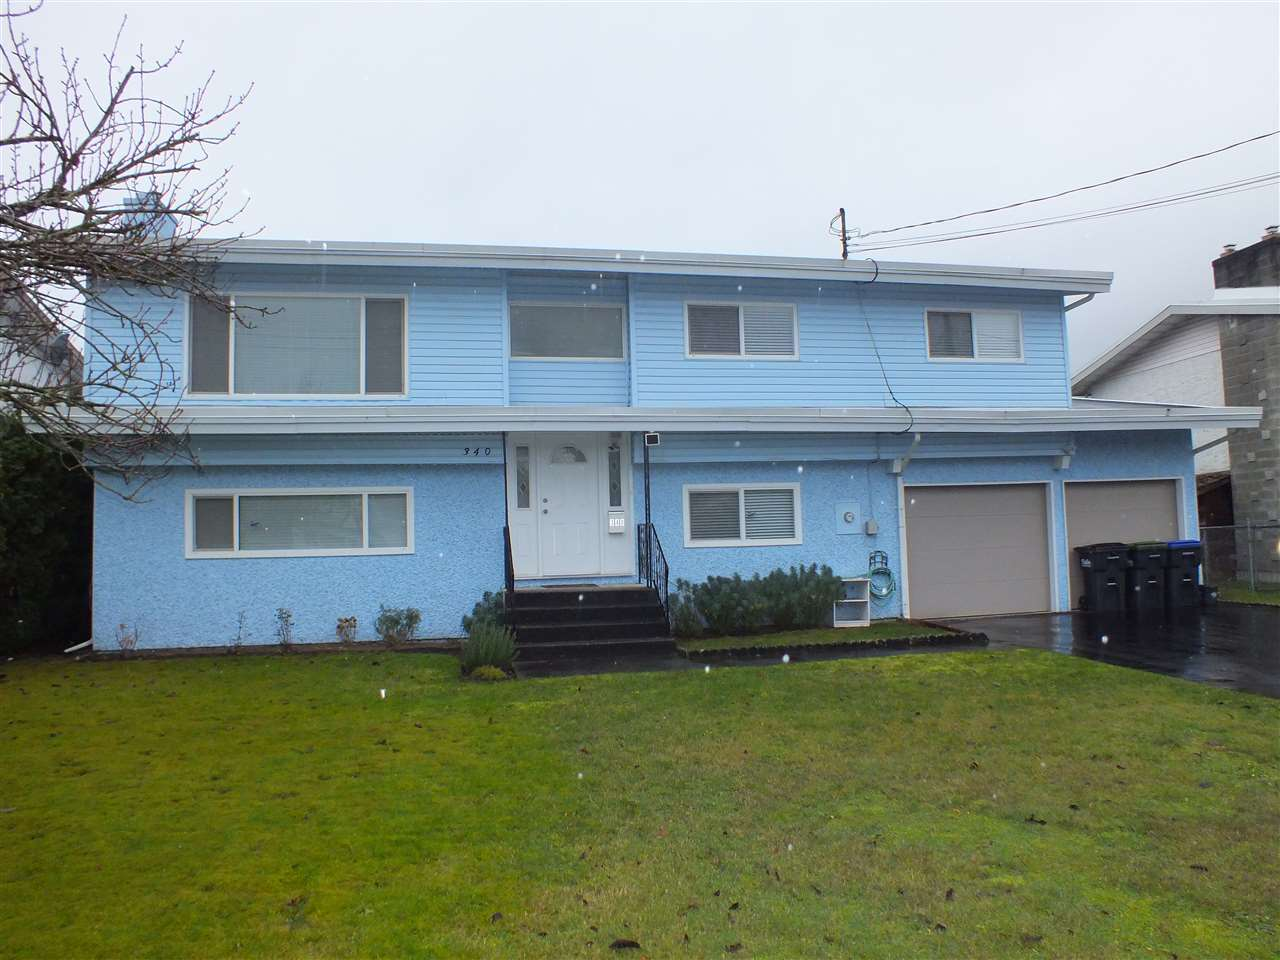 340 3RD AVENUE - Hope Center House/Single Family for sale, 4 Bedrooms (R2523884) - #1